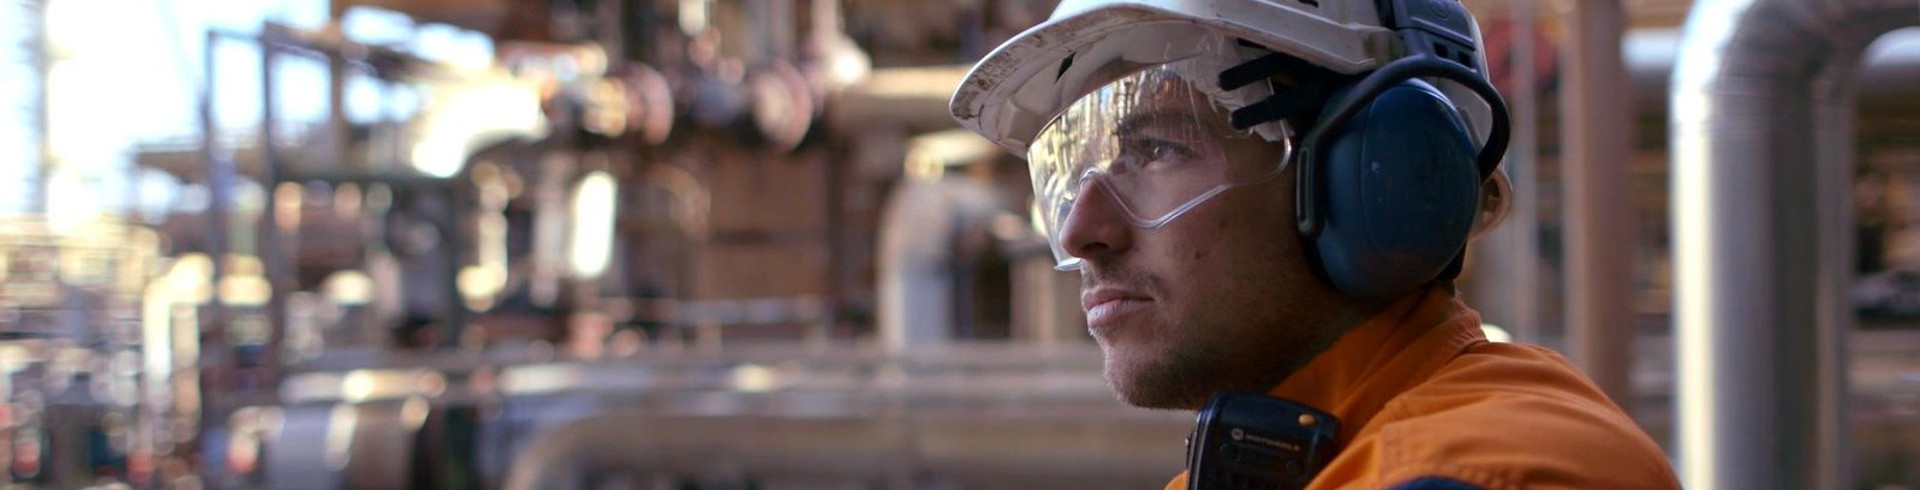 A worker at a refinery wearing safety gear and other elements.